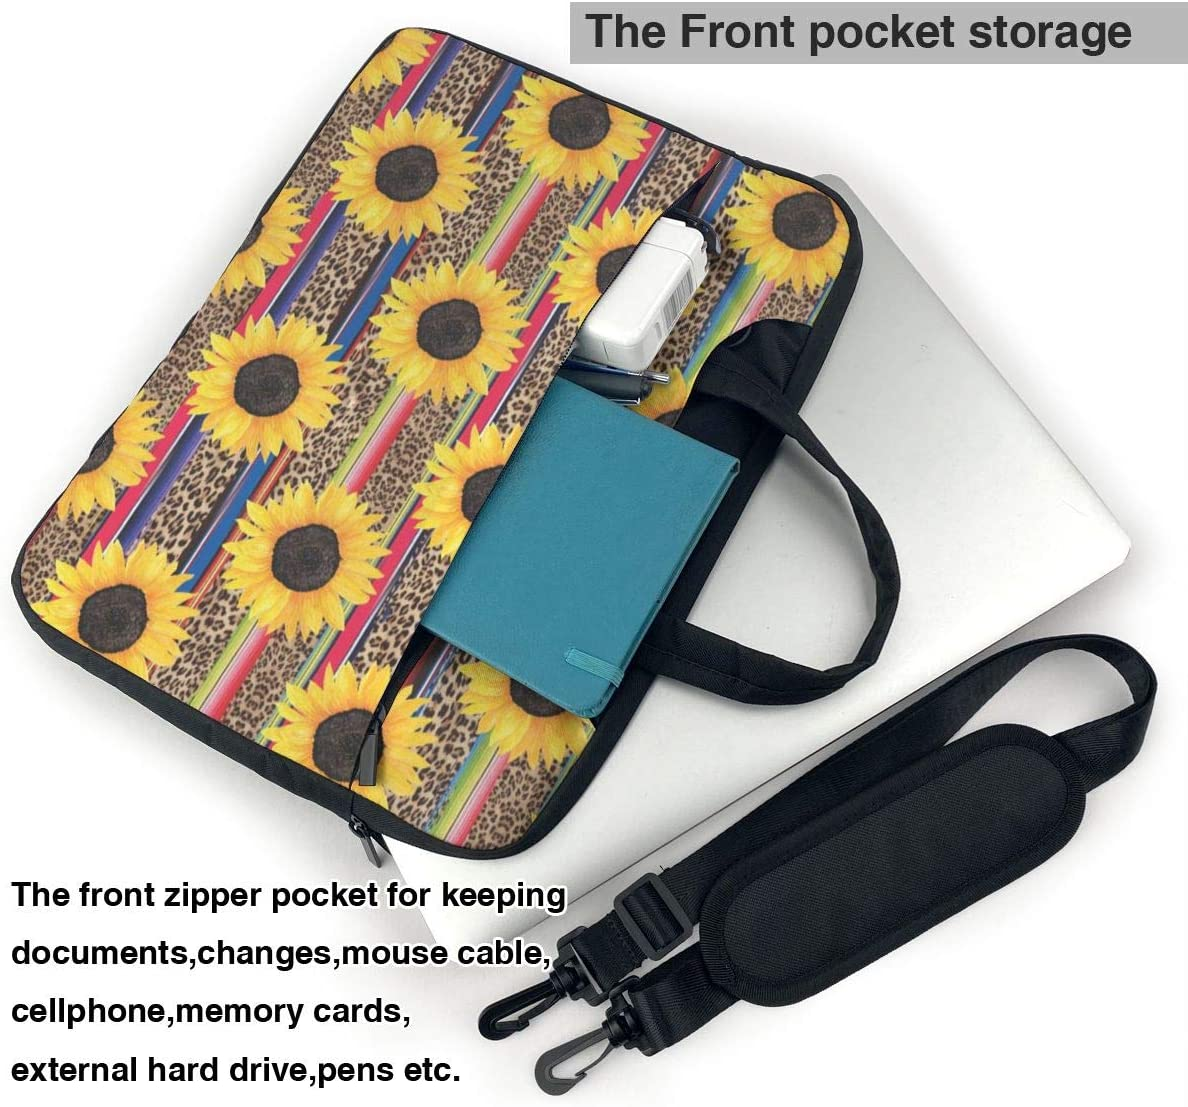 NEPower Laptop Tote Bag Galaxy Sunflower Dog Shockproof Laptop Carrying Sleeve with Strap Fits 13-15.6in Notebook for Office